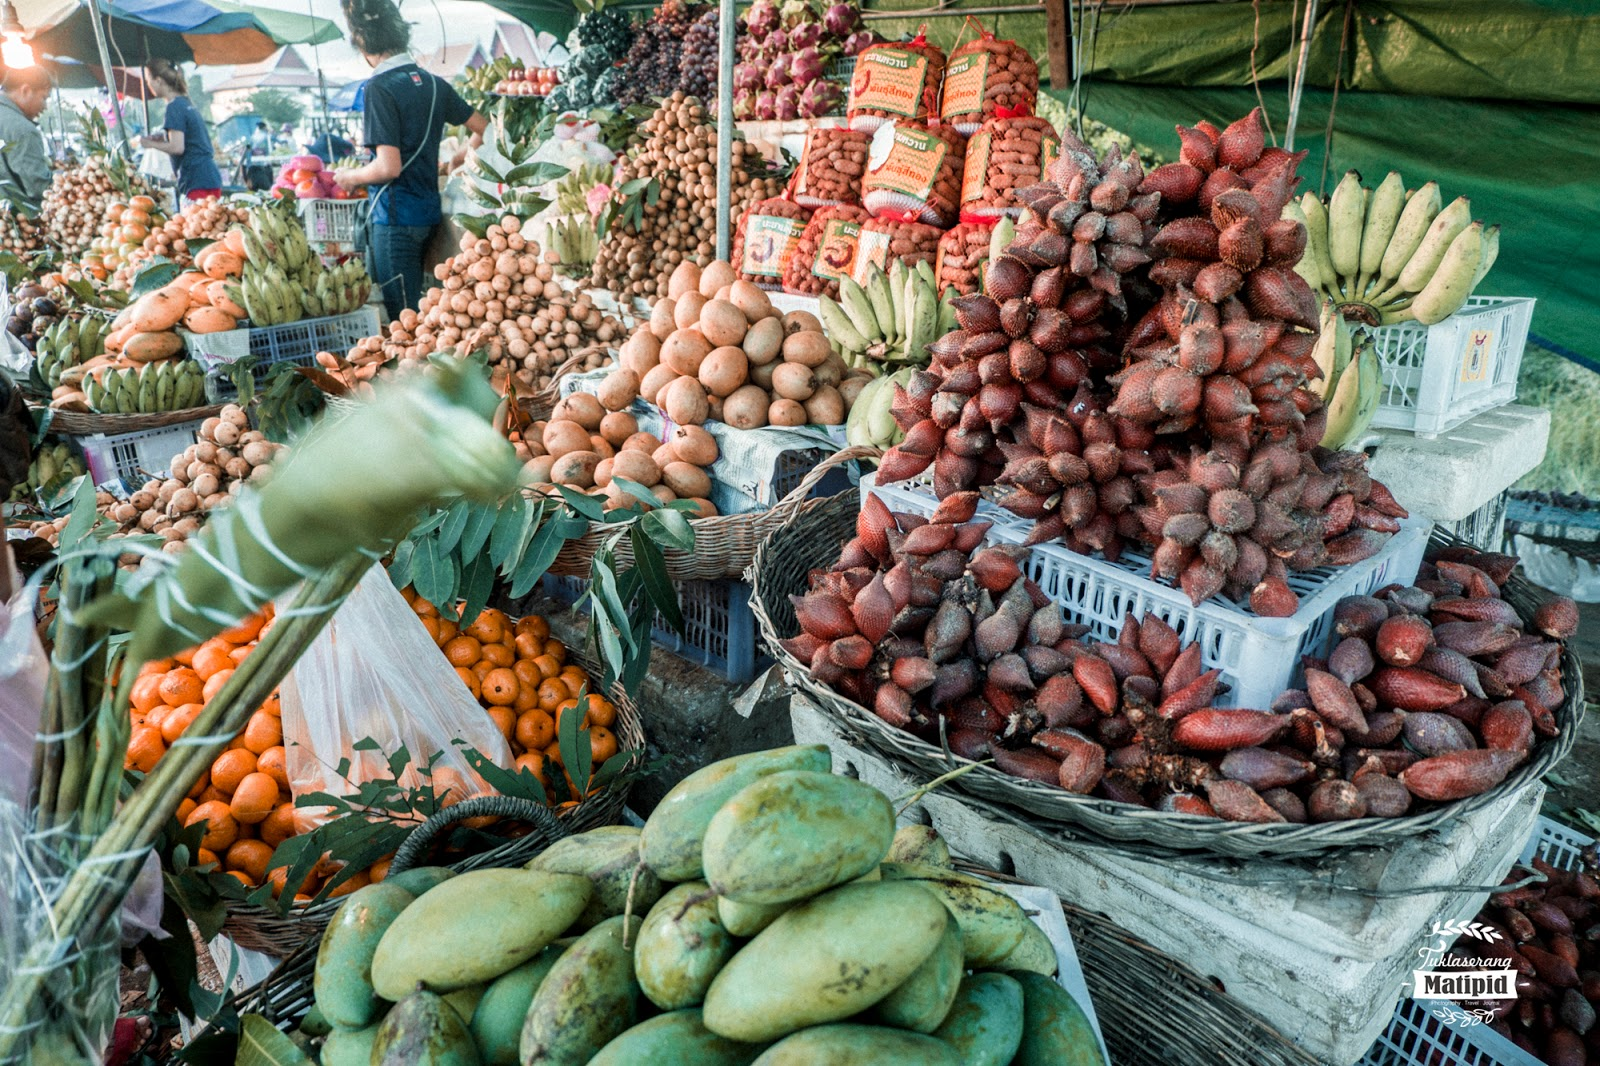 Fruits and Veggies sold in Siem reap